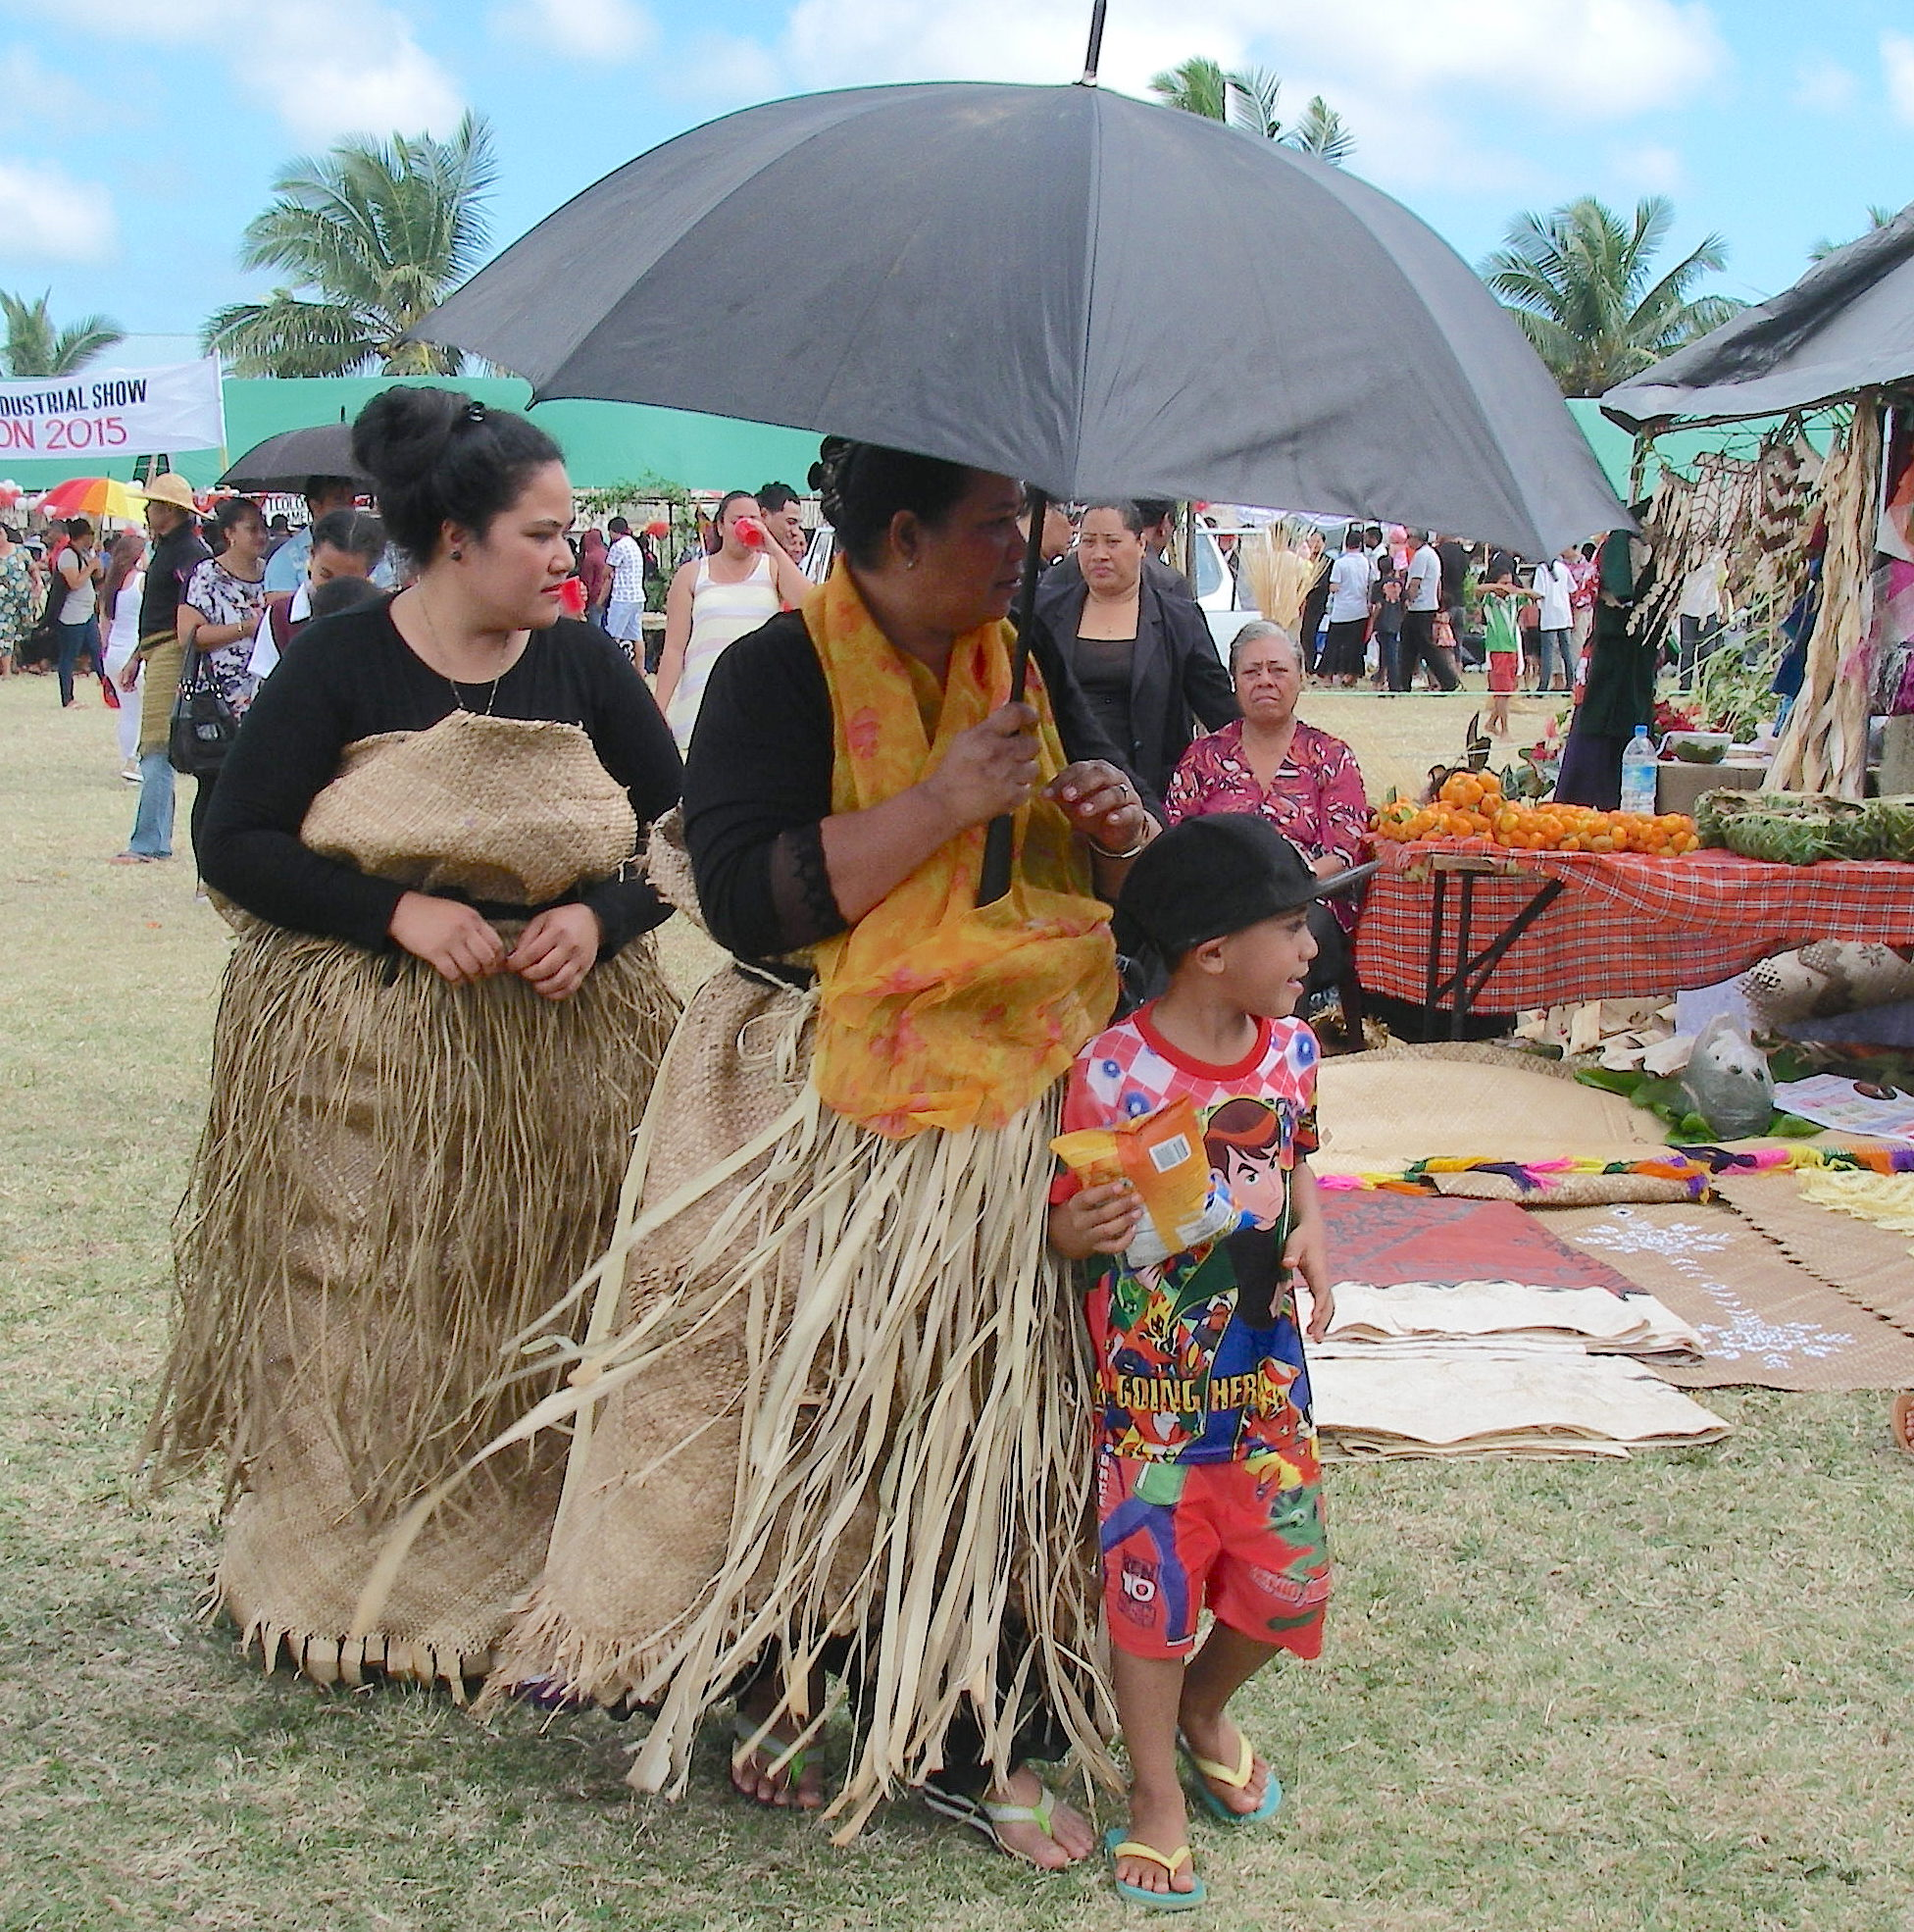 105. These two Tongan women are in mourning for a closely related loved one. This is evident by their black clothes, and their thick ta'ovala covered by a fakaaveave